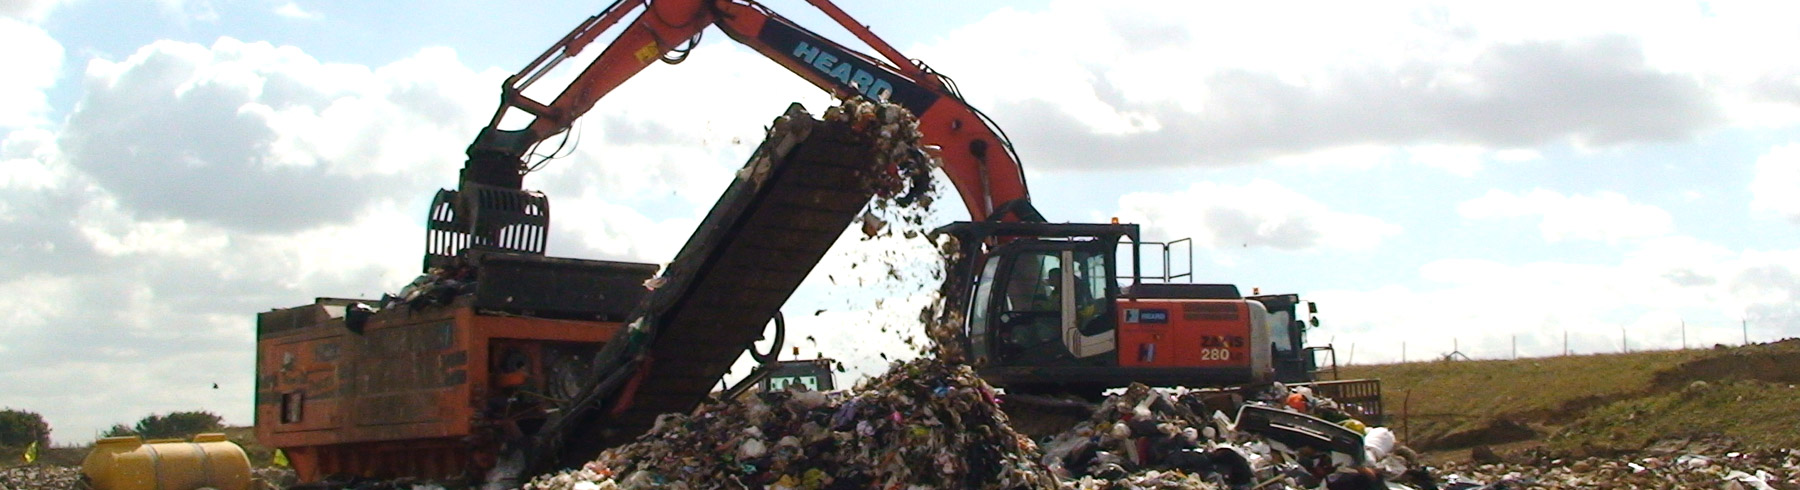 Waste Recycling Services Essex